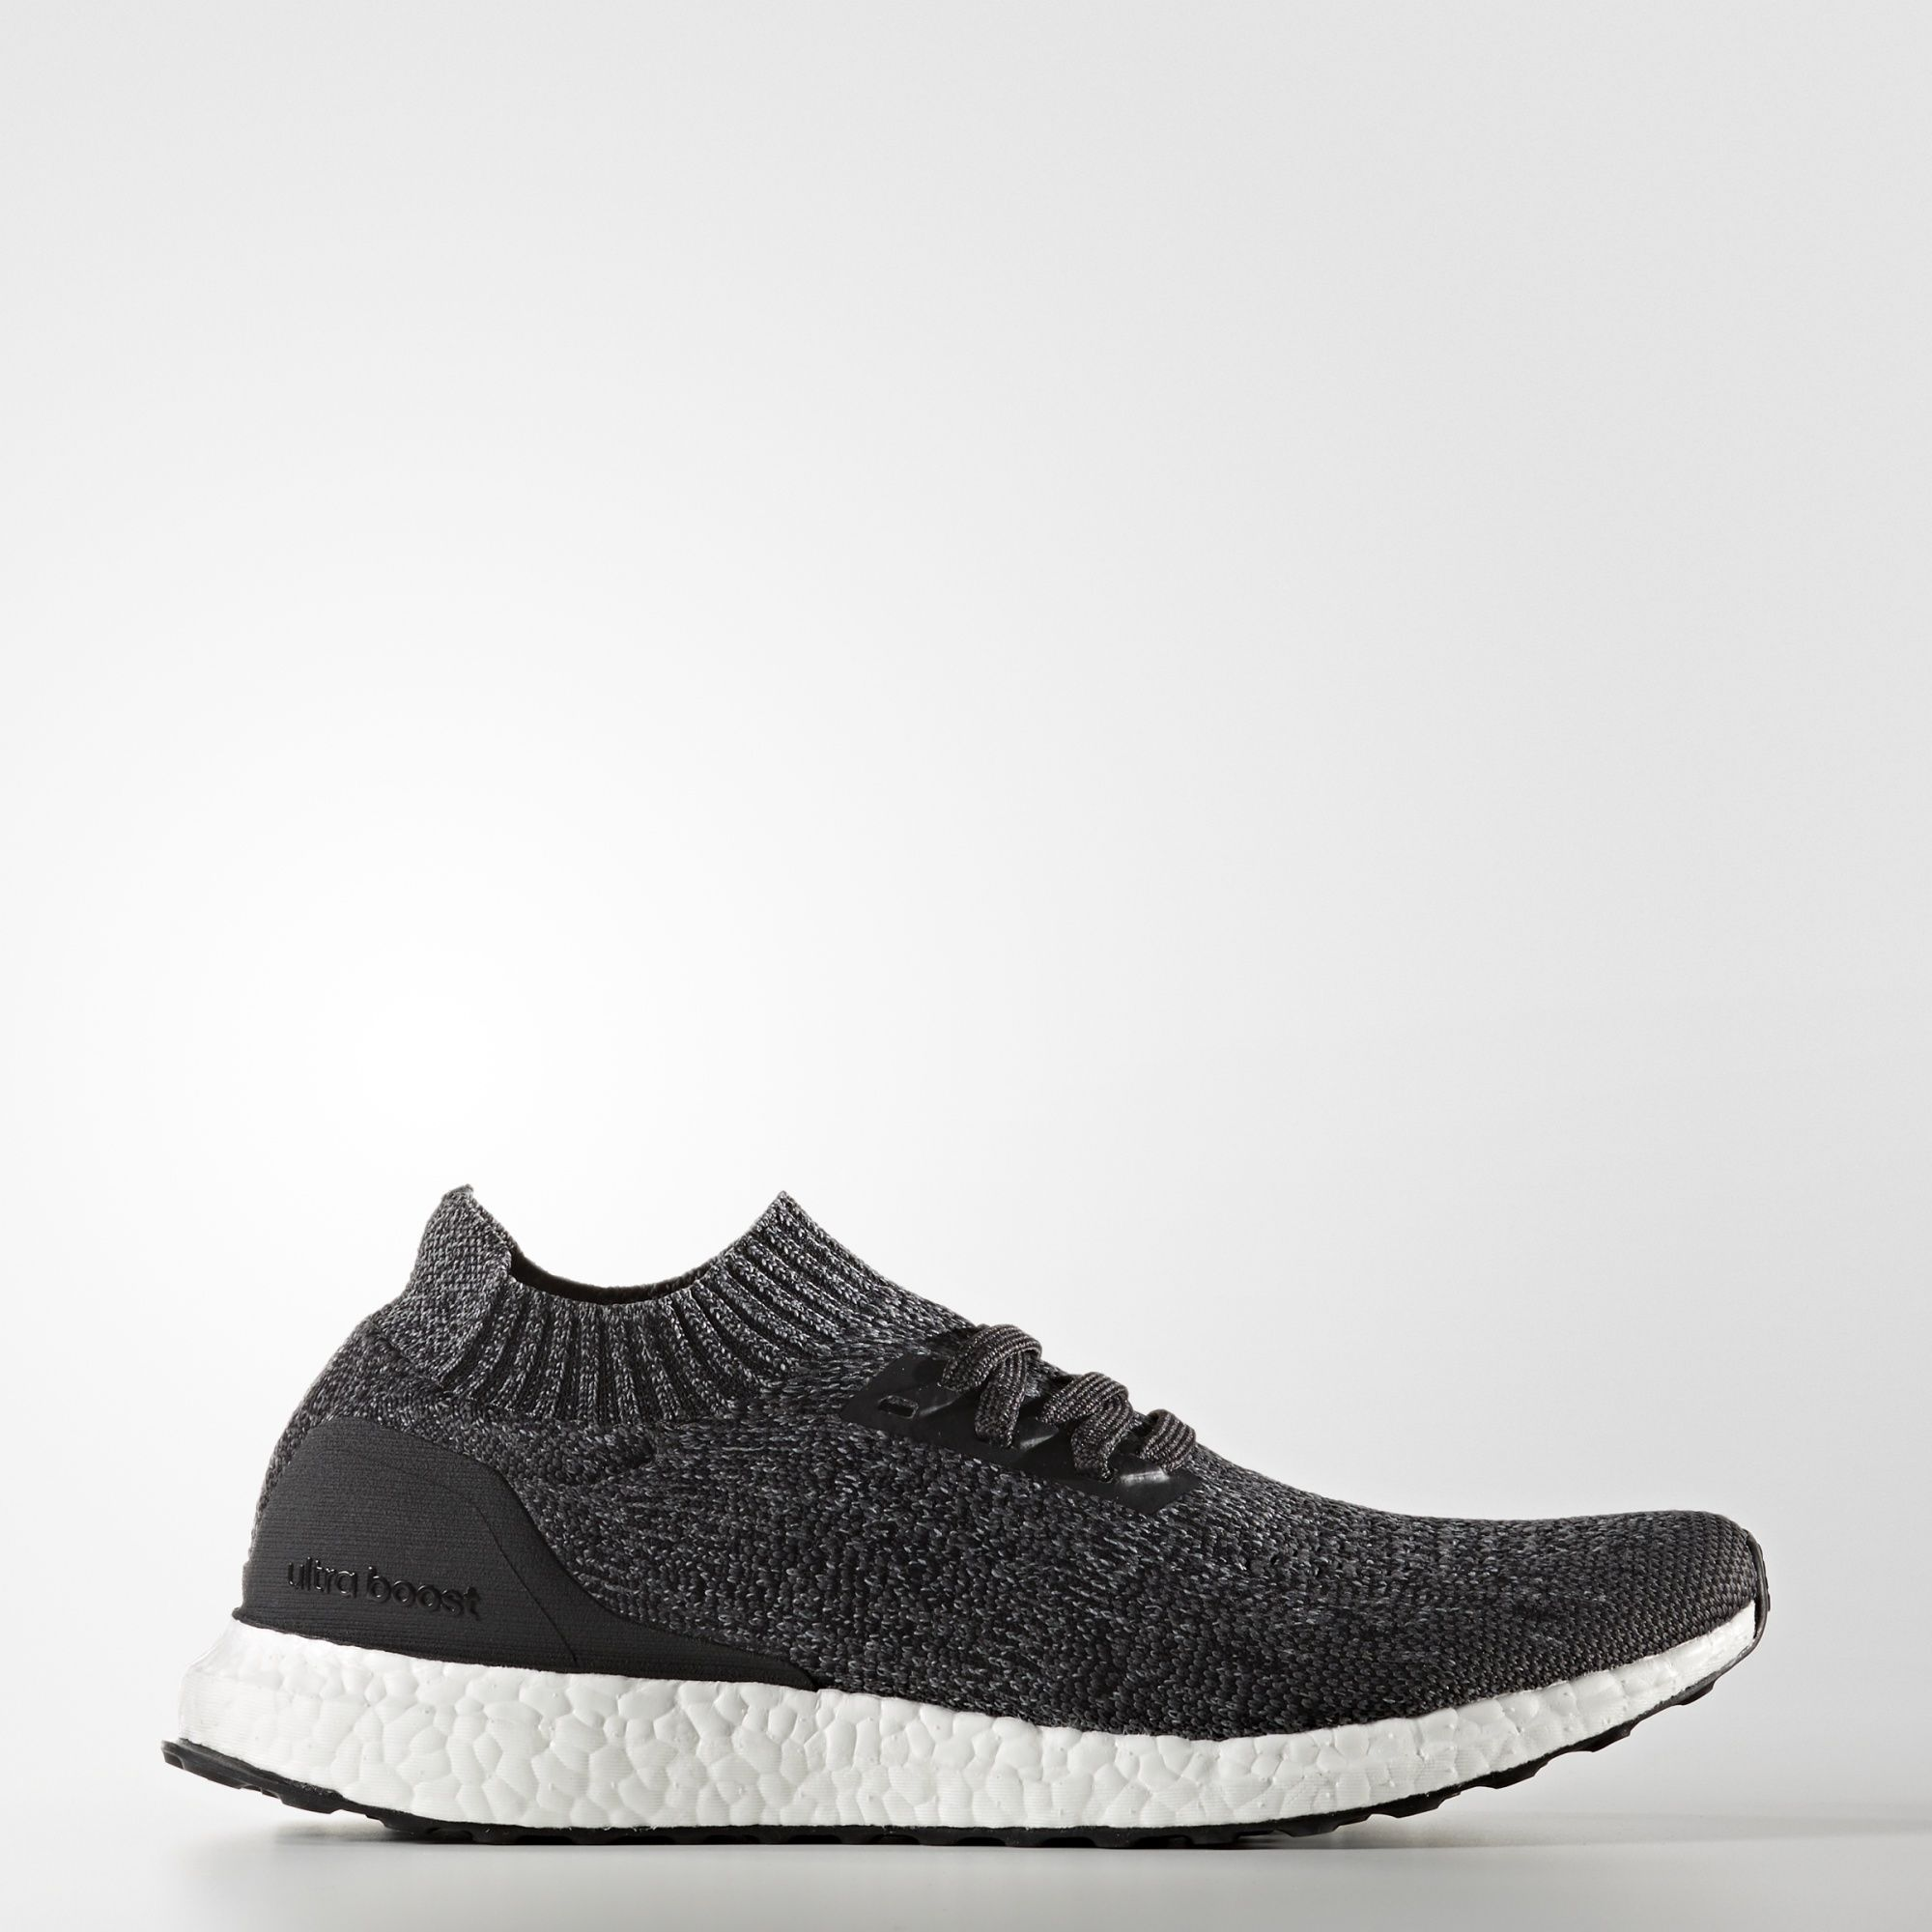 2764ac29c98f2 adidas ultra boost uncaged black grey three adidas ultra boost womens  running shoes olive green